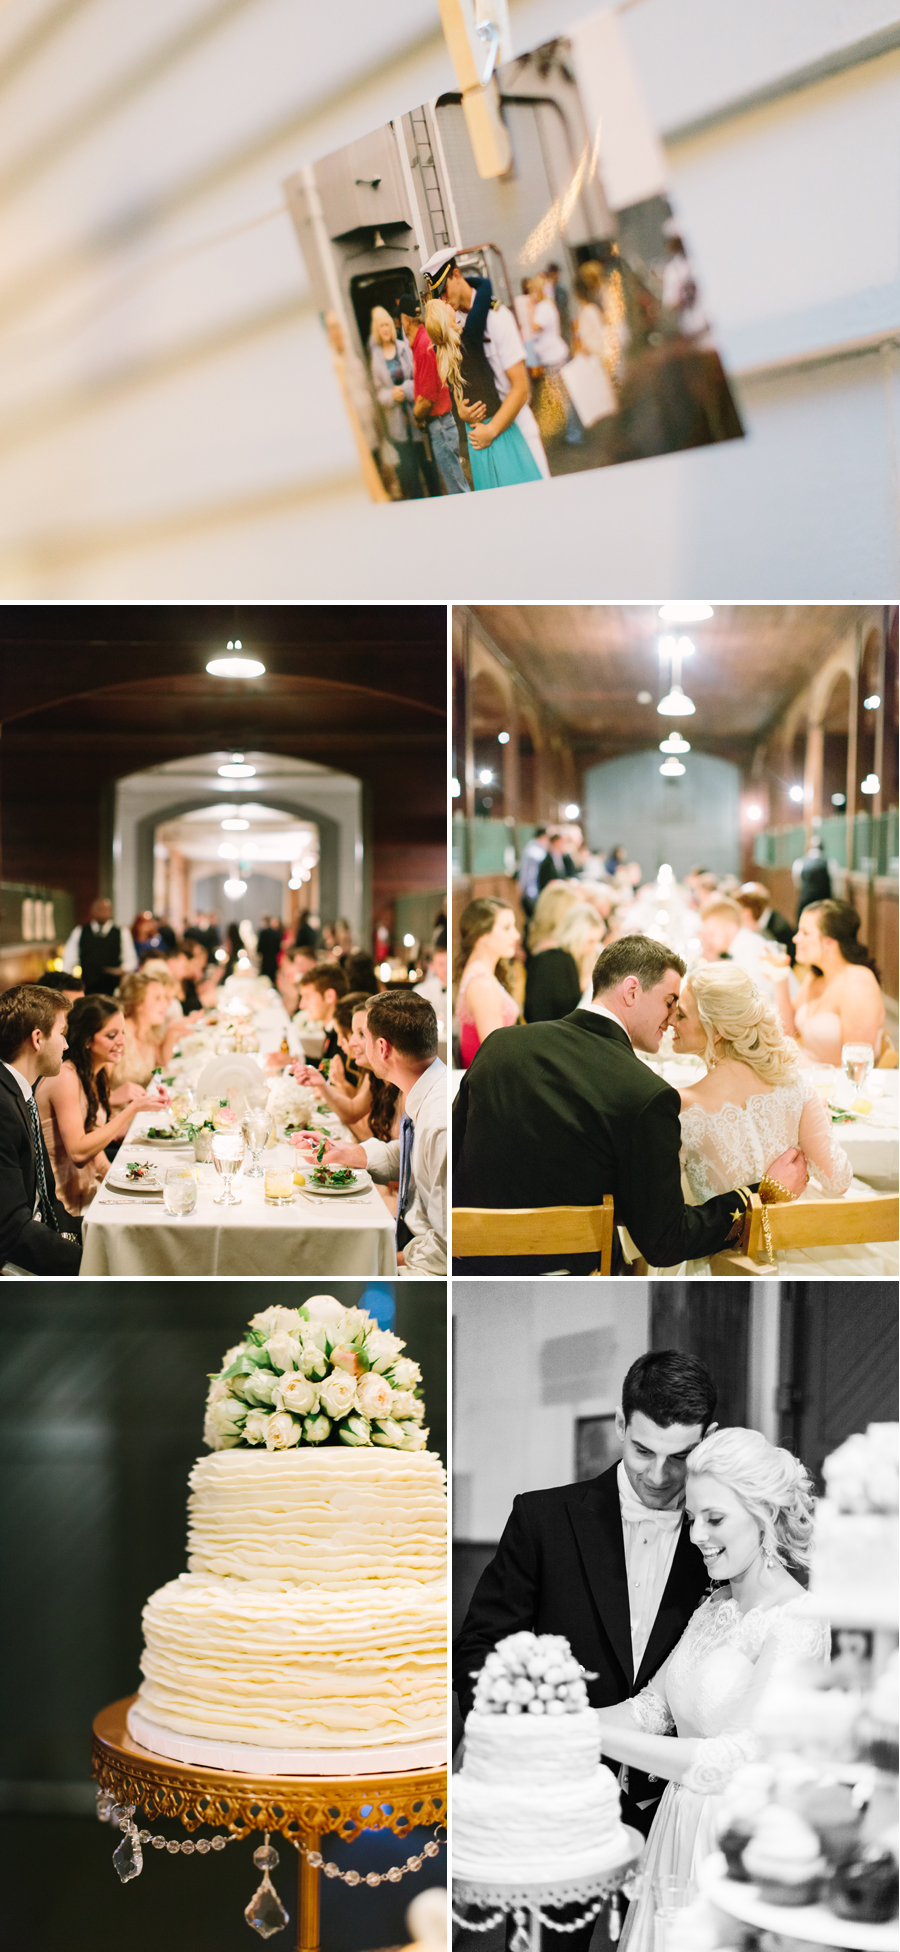 Nashville_Wedding_Photographer_Rachel_Moore_9.jpg